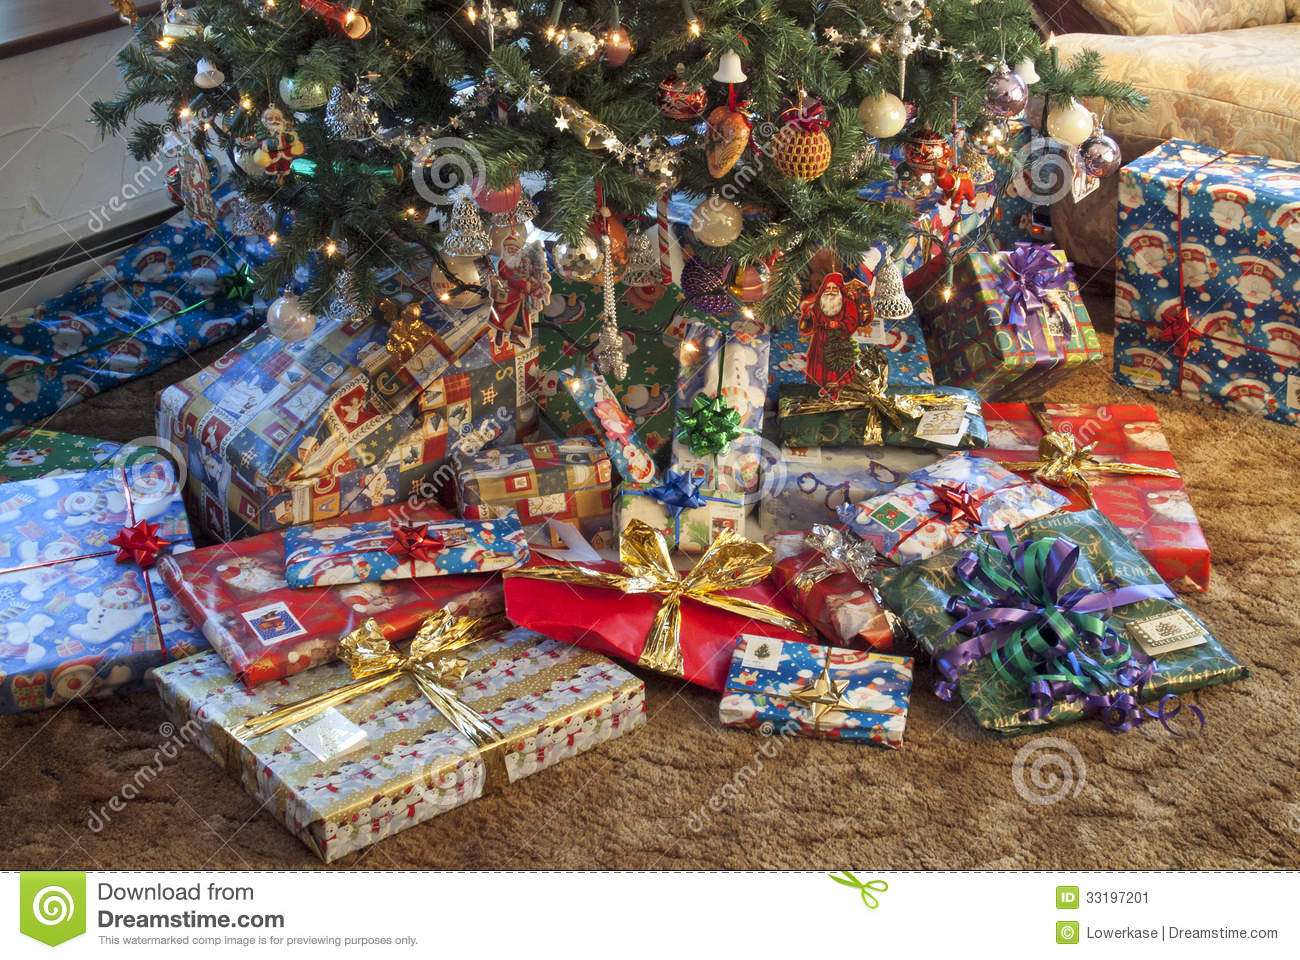 Getting Around - The New York Times |Wrapped Christmas Presents Under The Tree